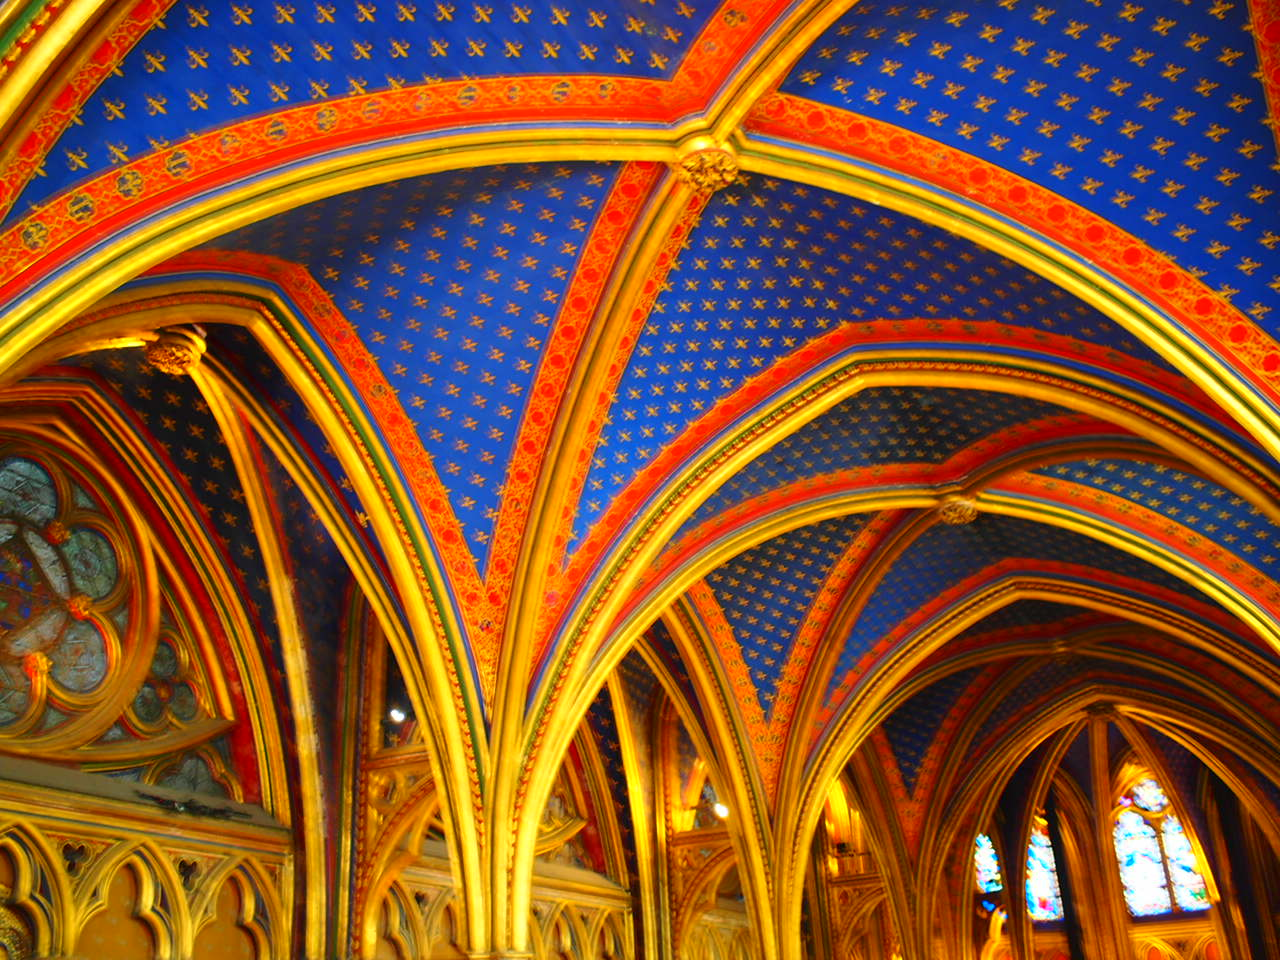 ceiling in the lower chapel of Sainte-Chappelle, another can't-miss